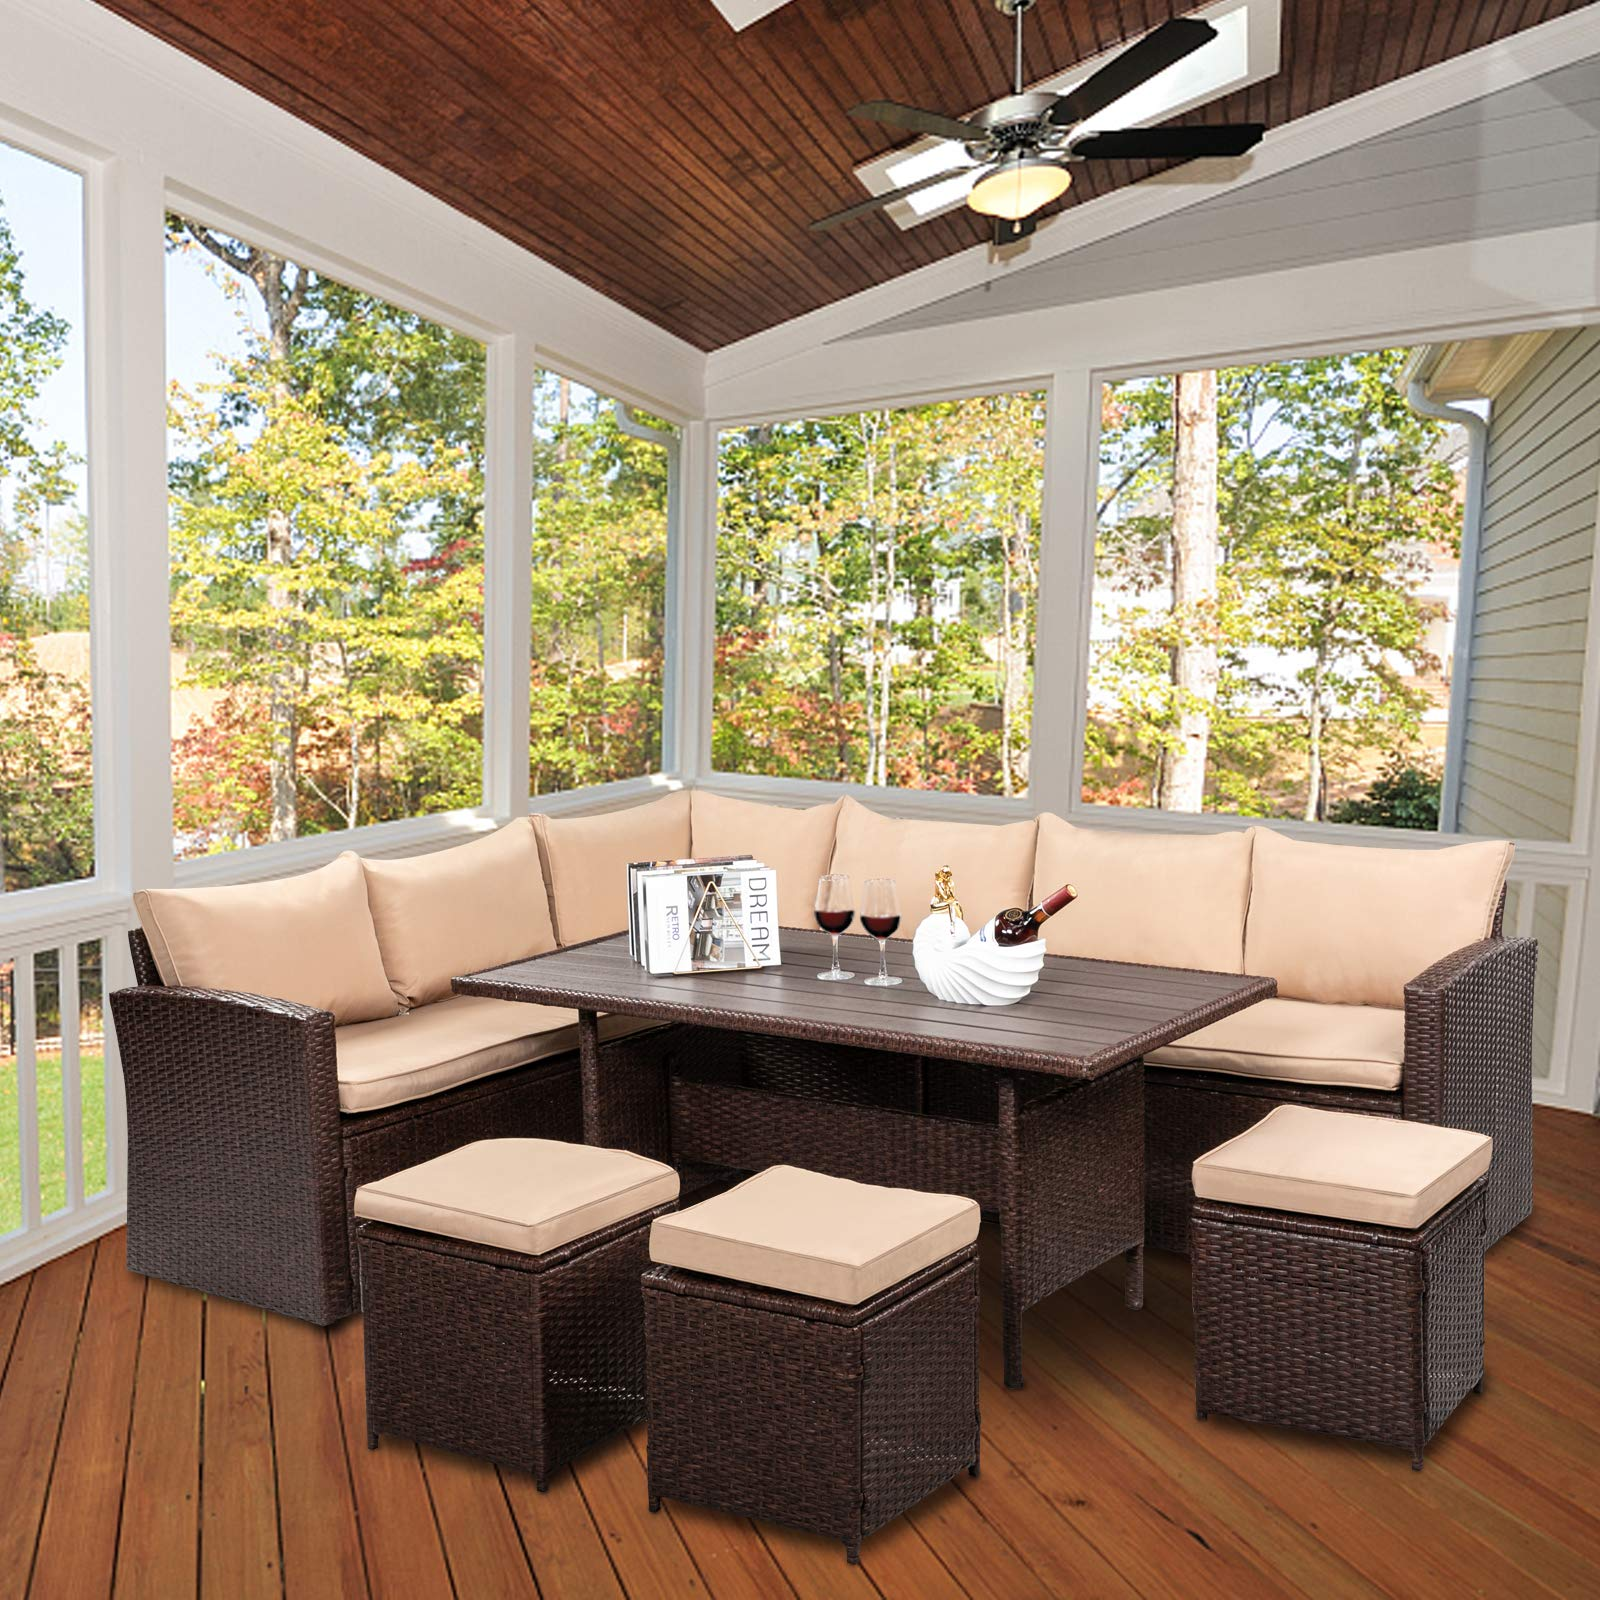 VINGLI 8 Pieces Patio Furniture Set, All Weather Wicker Patio Sectional Furniture Set Rattan Sofa Couch, Outdoor Dining Ta...